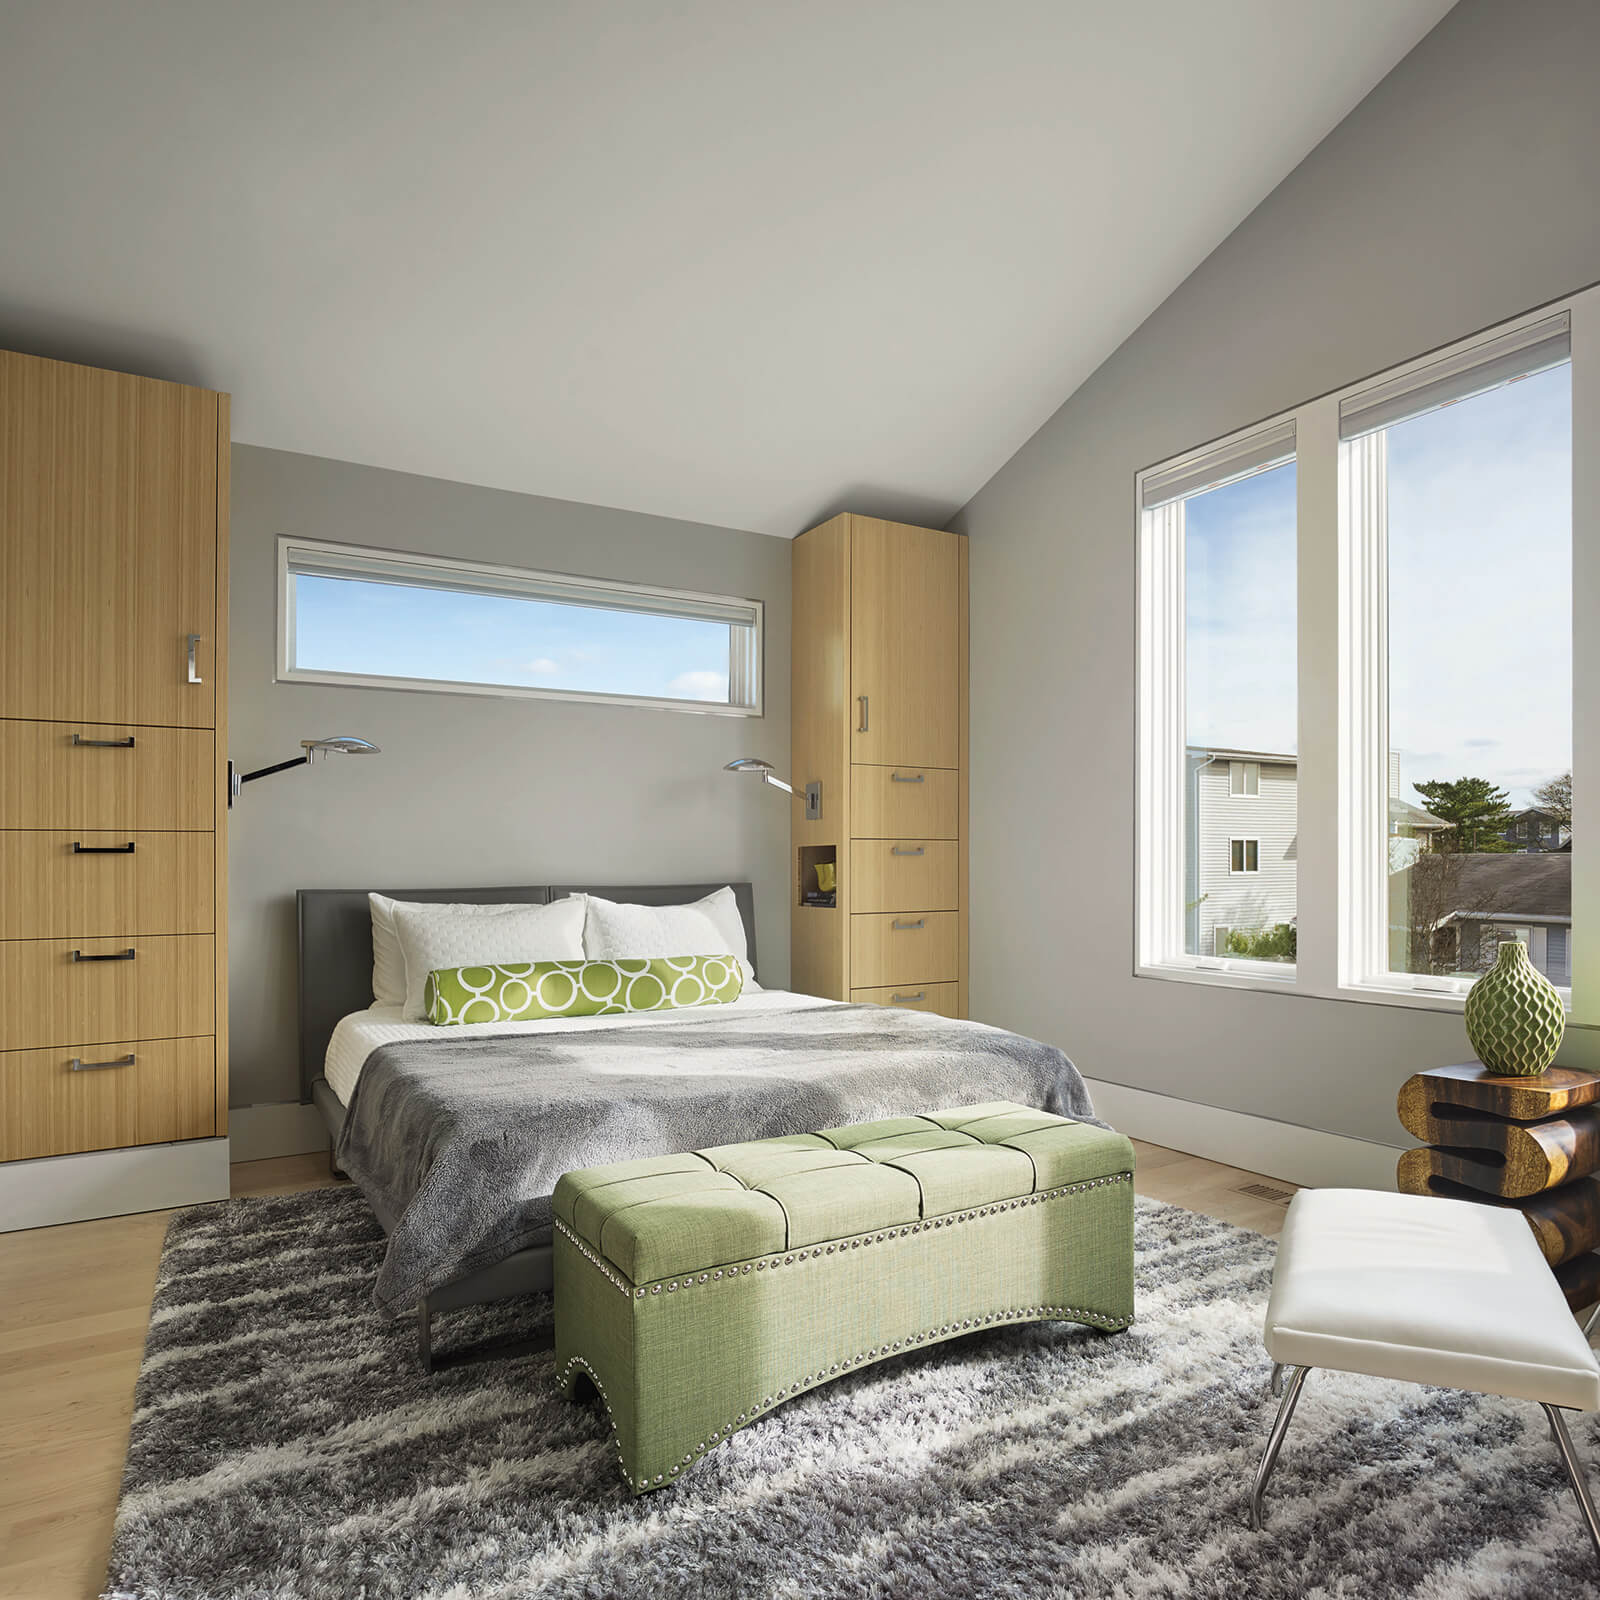 Contemporary style bedroom with floor to ceiling cabinets, modern furniture and Marvin Elevate Casement Windows